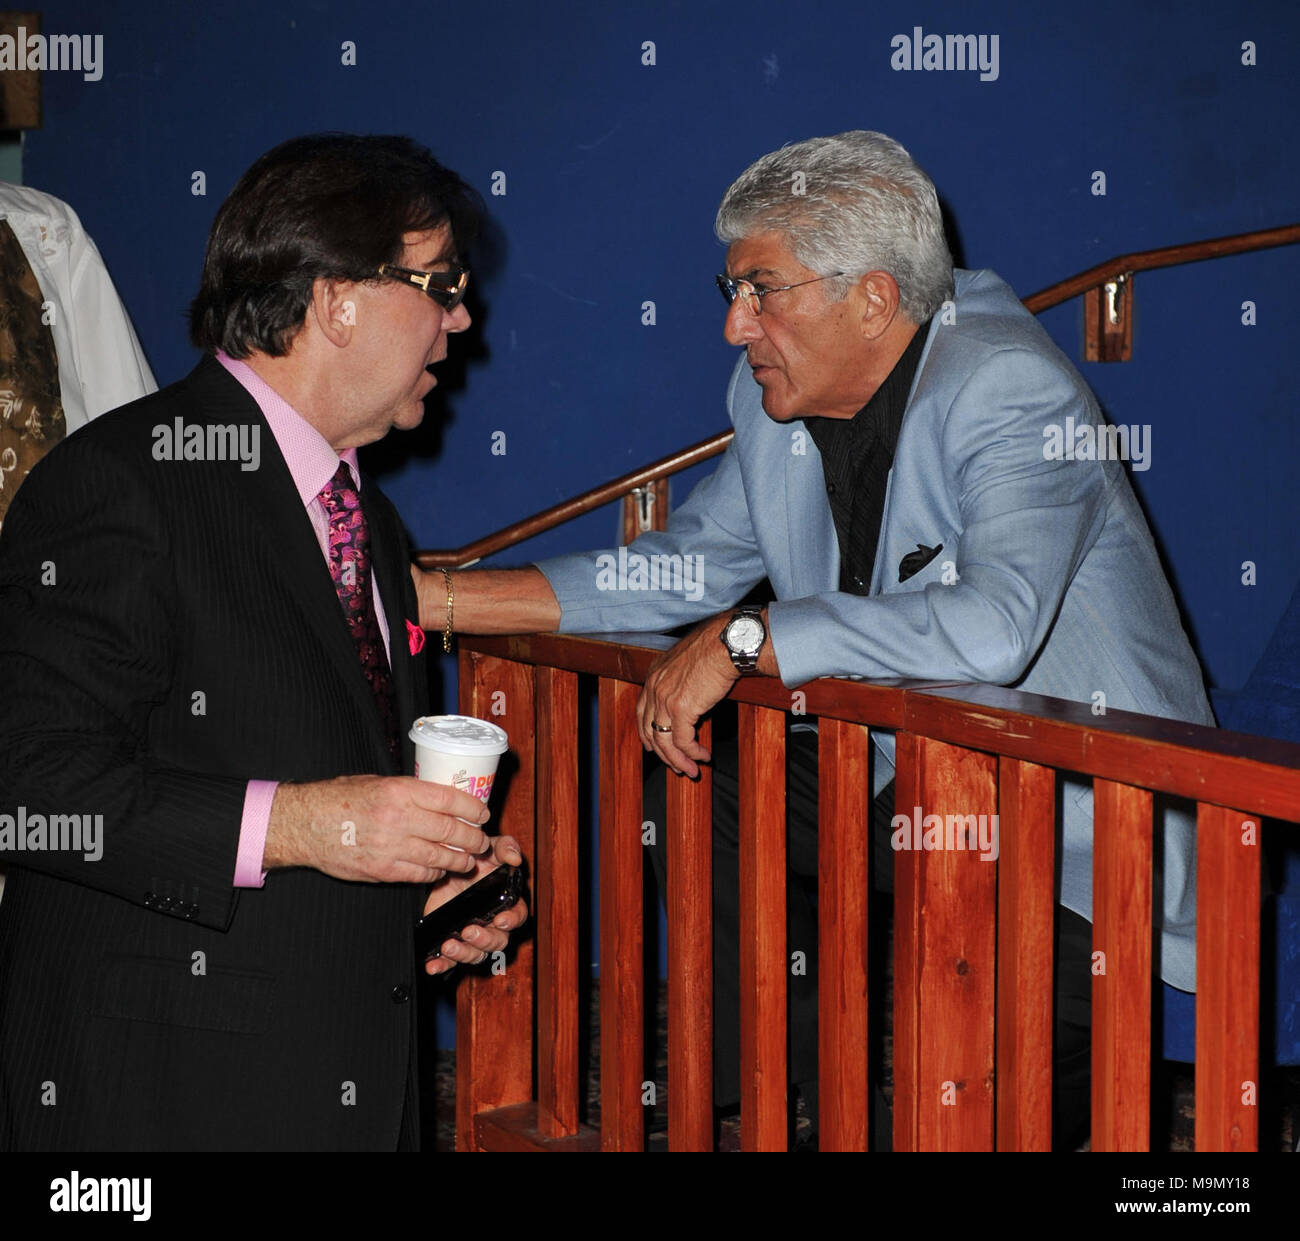 FORT LAUDERDALE, FL - JANUARY 08: Frank Vincent arrives at the screening of Genus On Hold at Cinema Paradiso.  GENIUS ON HOLD is a documentary film narrated by Frank Vincent (Goodfellas, Casino, Raging Bull) that tells the epic story of Walter L. Shaw, an engineering genius who, more than half a century ago, invented technology that transformed the rudimentary telephone system of the 1950's into the foundation of today's cutting edge global telecommunications industry. AT&T held a stranglehold monopoly.   on January 8, 2009 in Fort Lauderdale, Florida.   People:  Frank Vincent - Stock Image